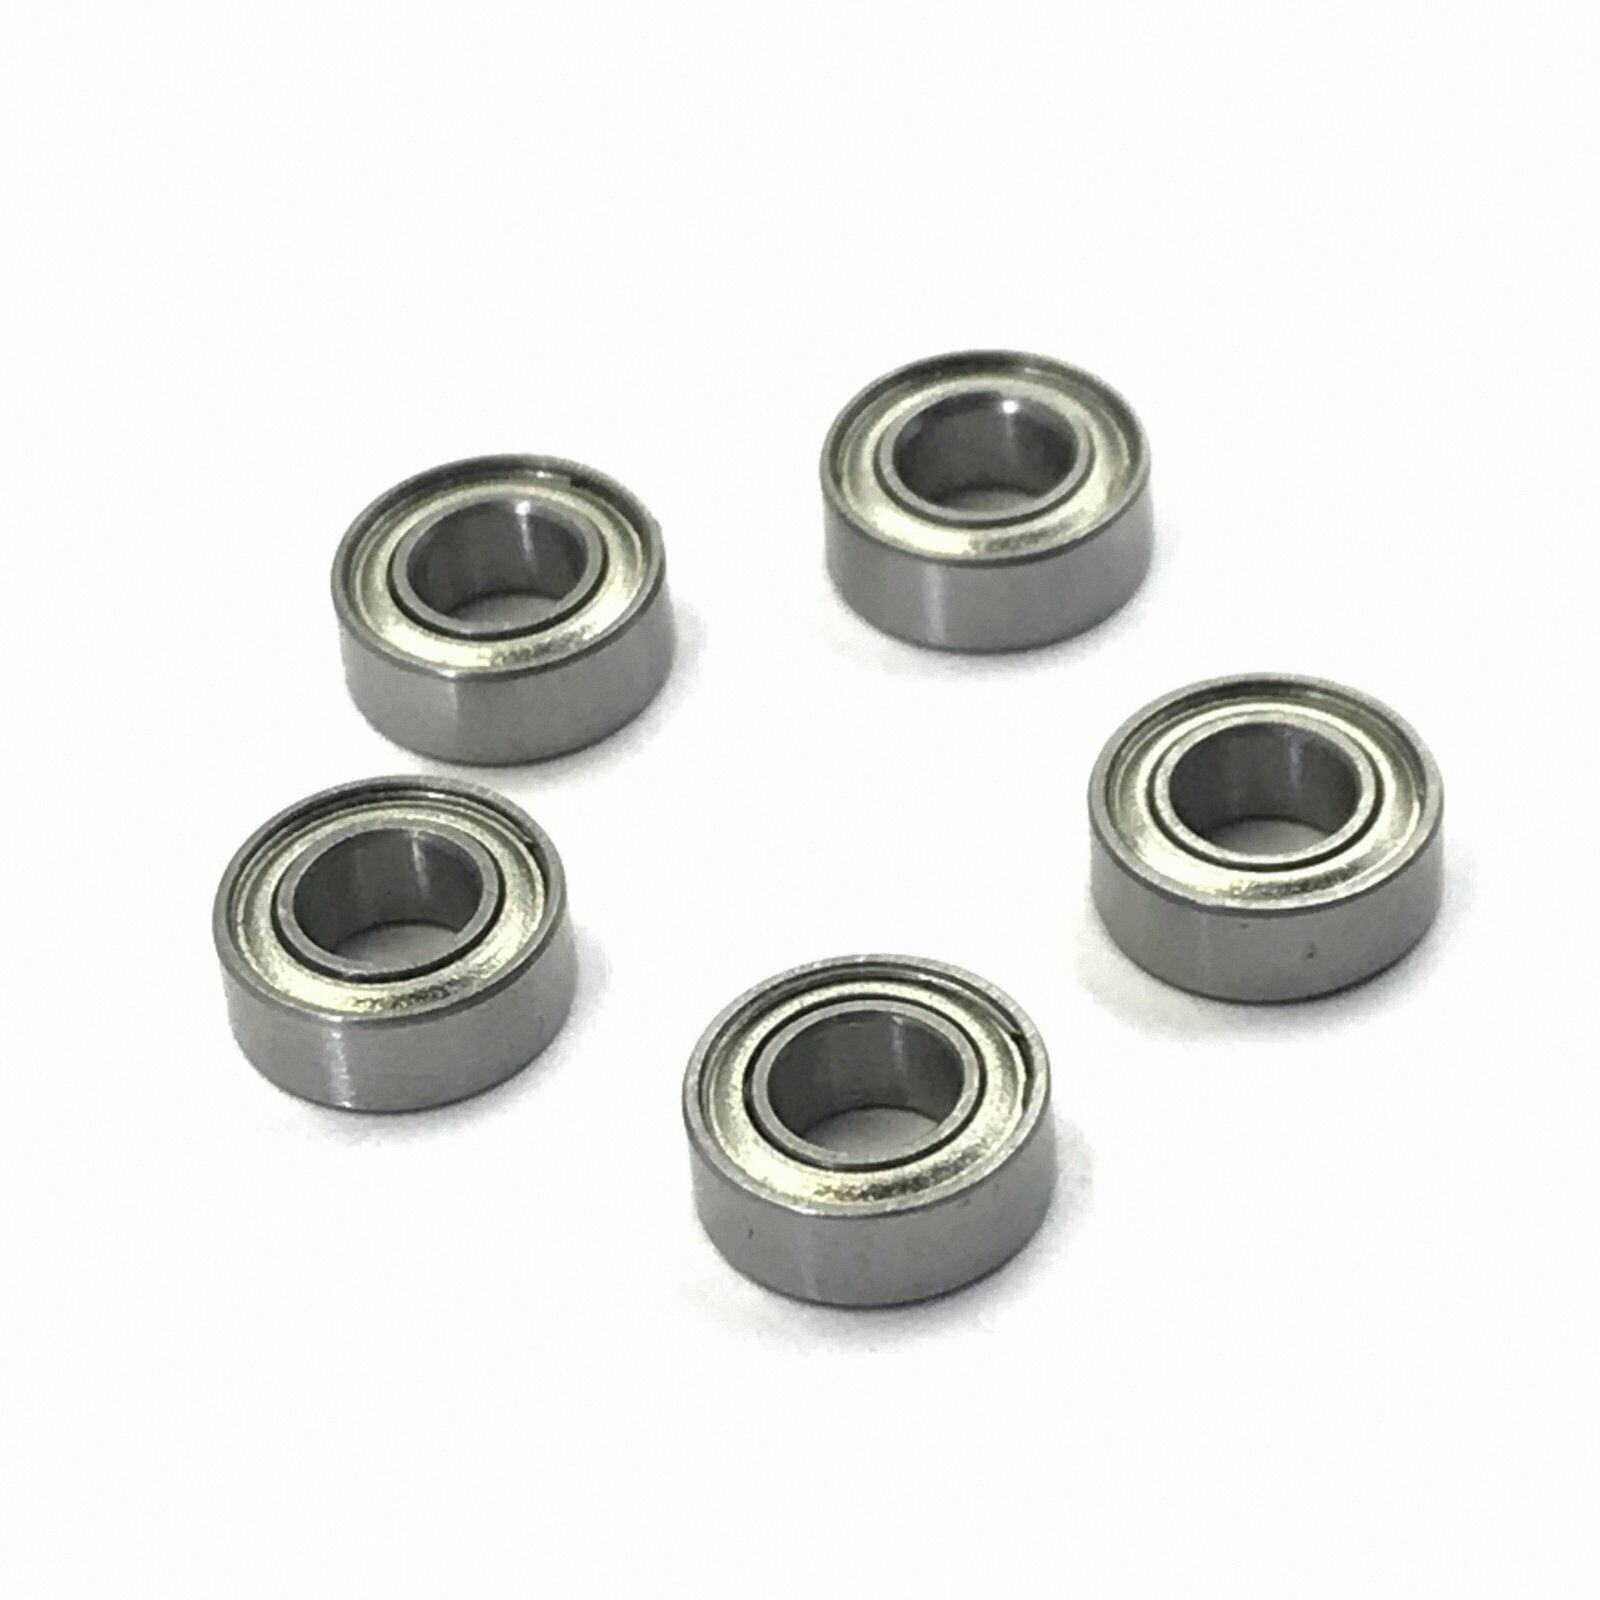 SF6800ZZ Flanged Bearing 10x19x5 Shielded Stainless Steel Ball Bearings 13703